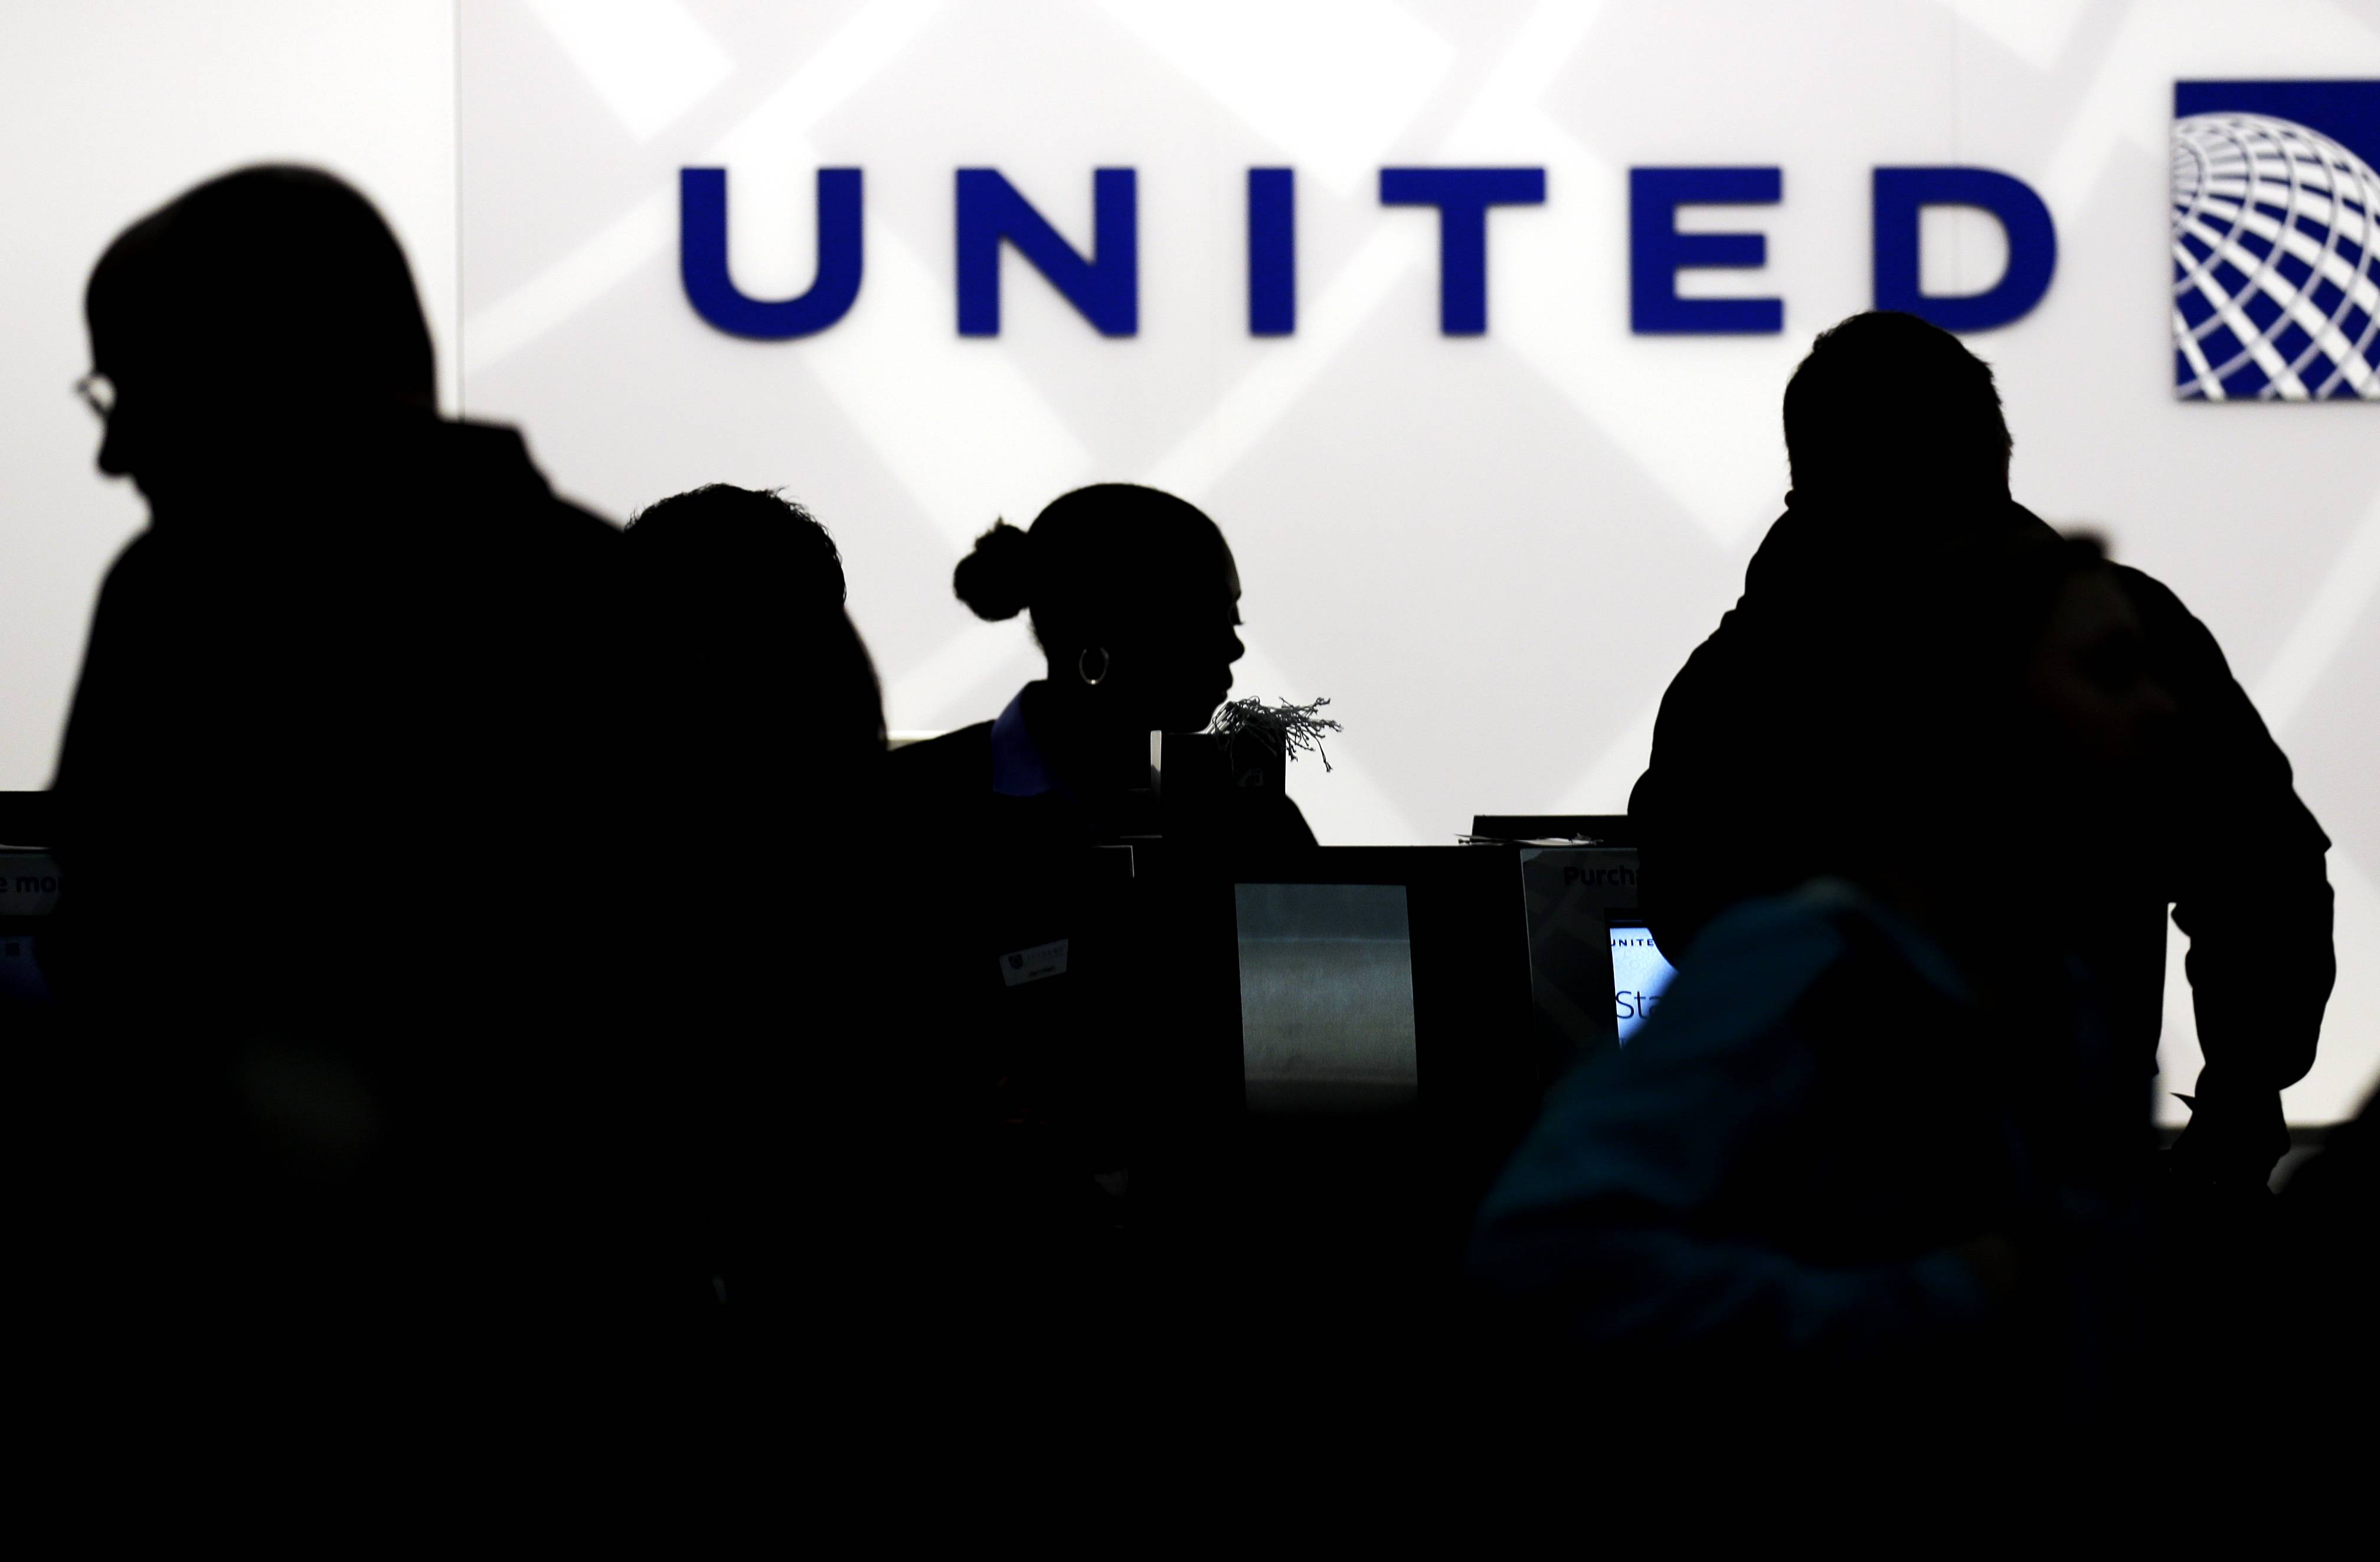 Associated Press/Dec. 21, 2013Travelers check in at the United Airlines ticket counter at Terminal 1 in O'Hare International Airport.